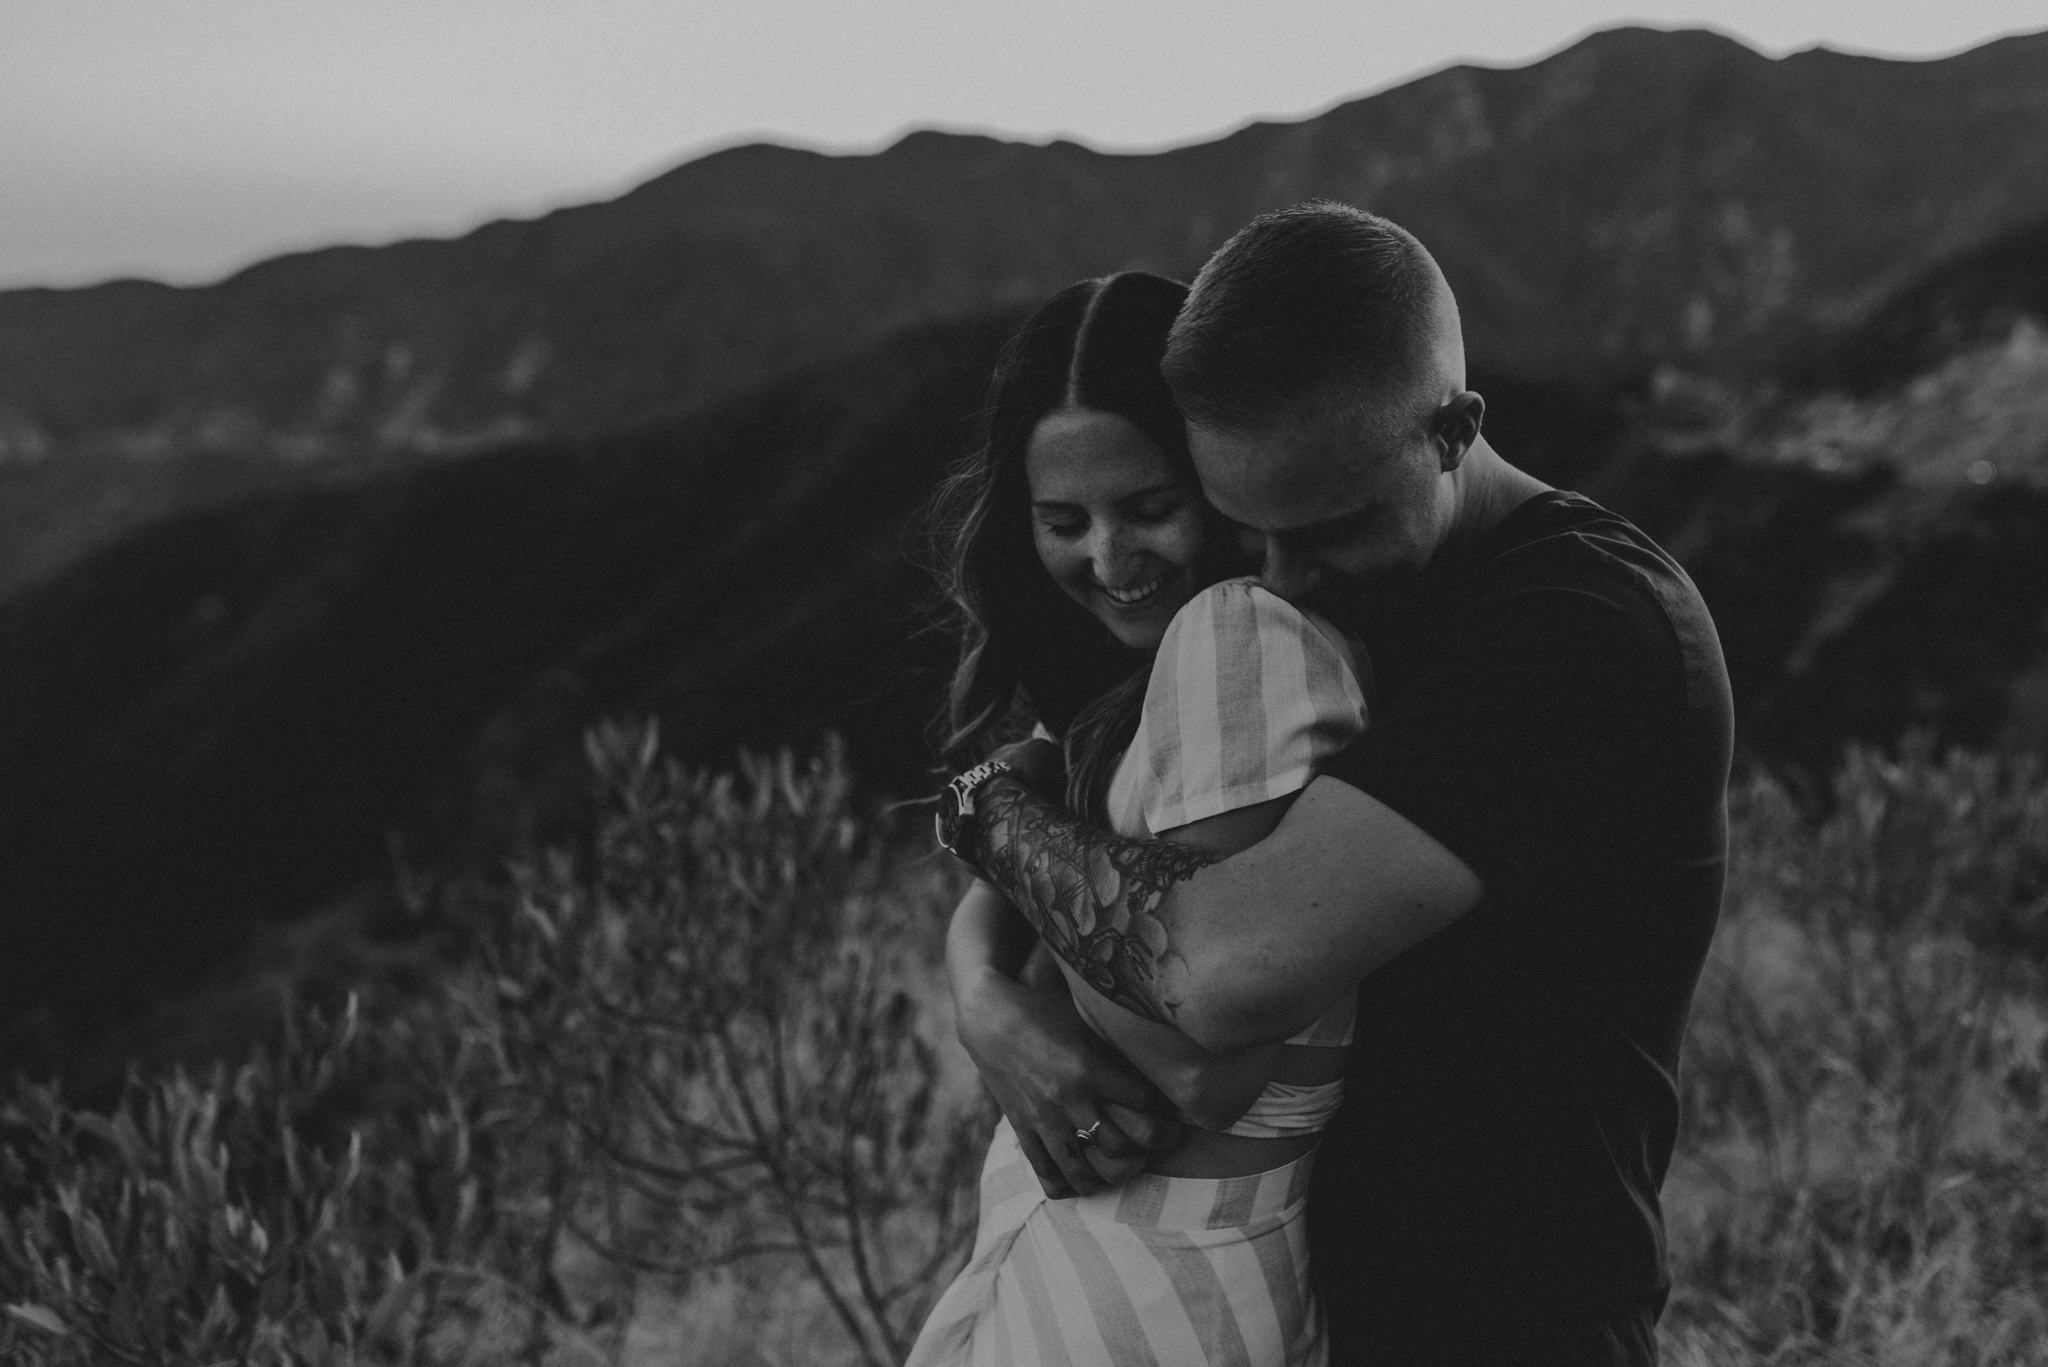 Isaiah + Taylor Photography - Los Angeles Forest Engagement Session - Laid back wedding photographer-029.jpg